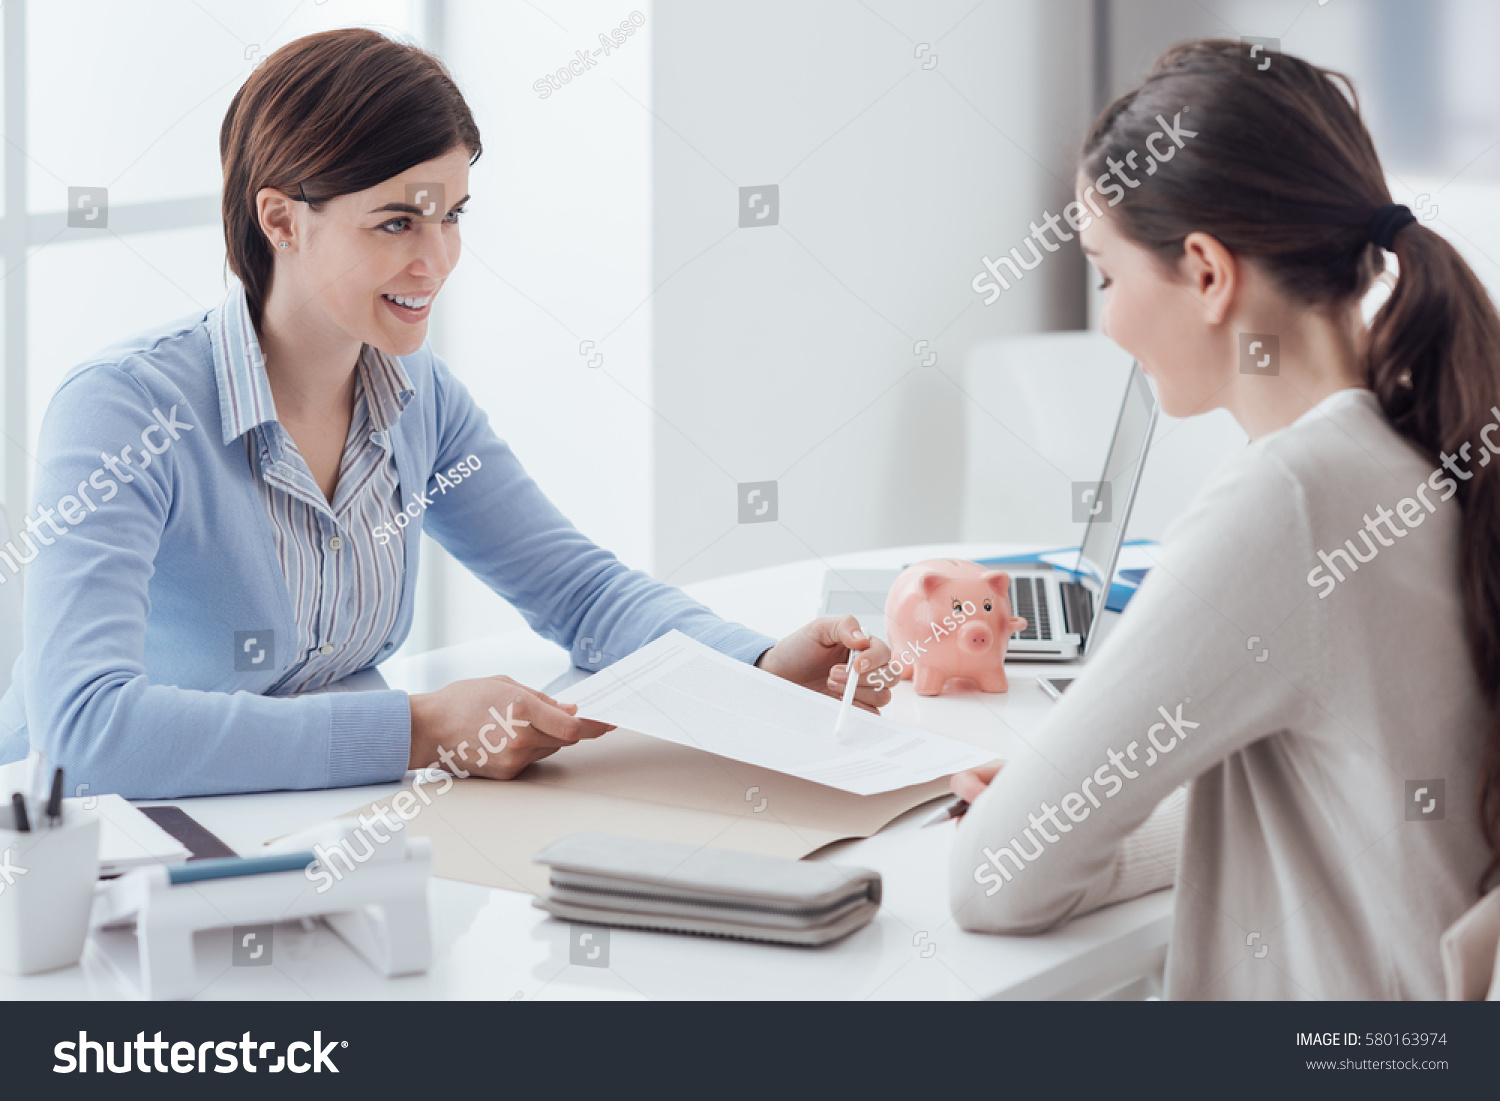 the office the meeting. business consultant and customer meeting in the office businesswoman is holding a contract e